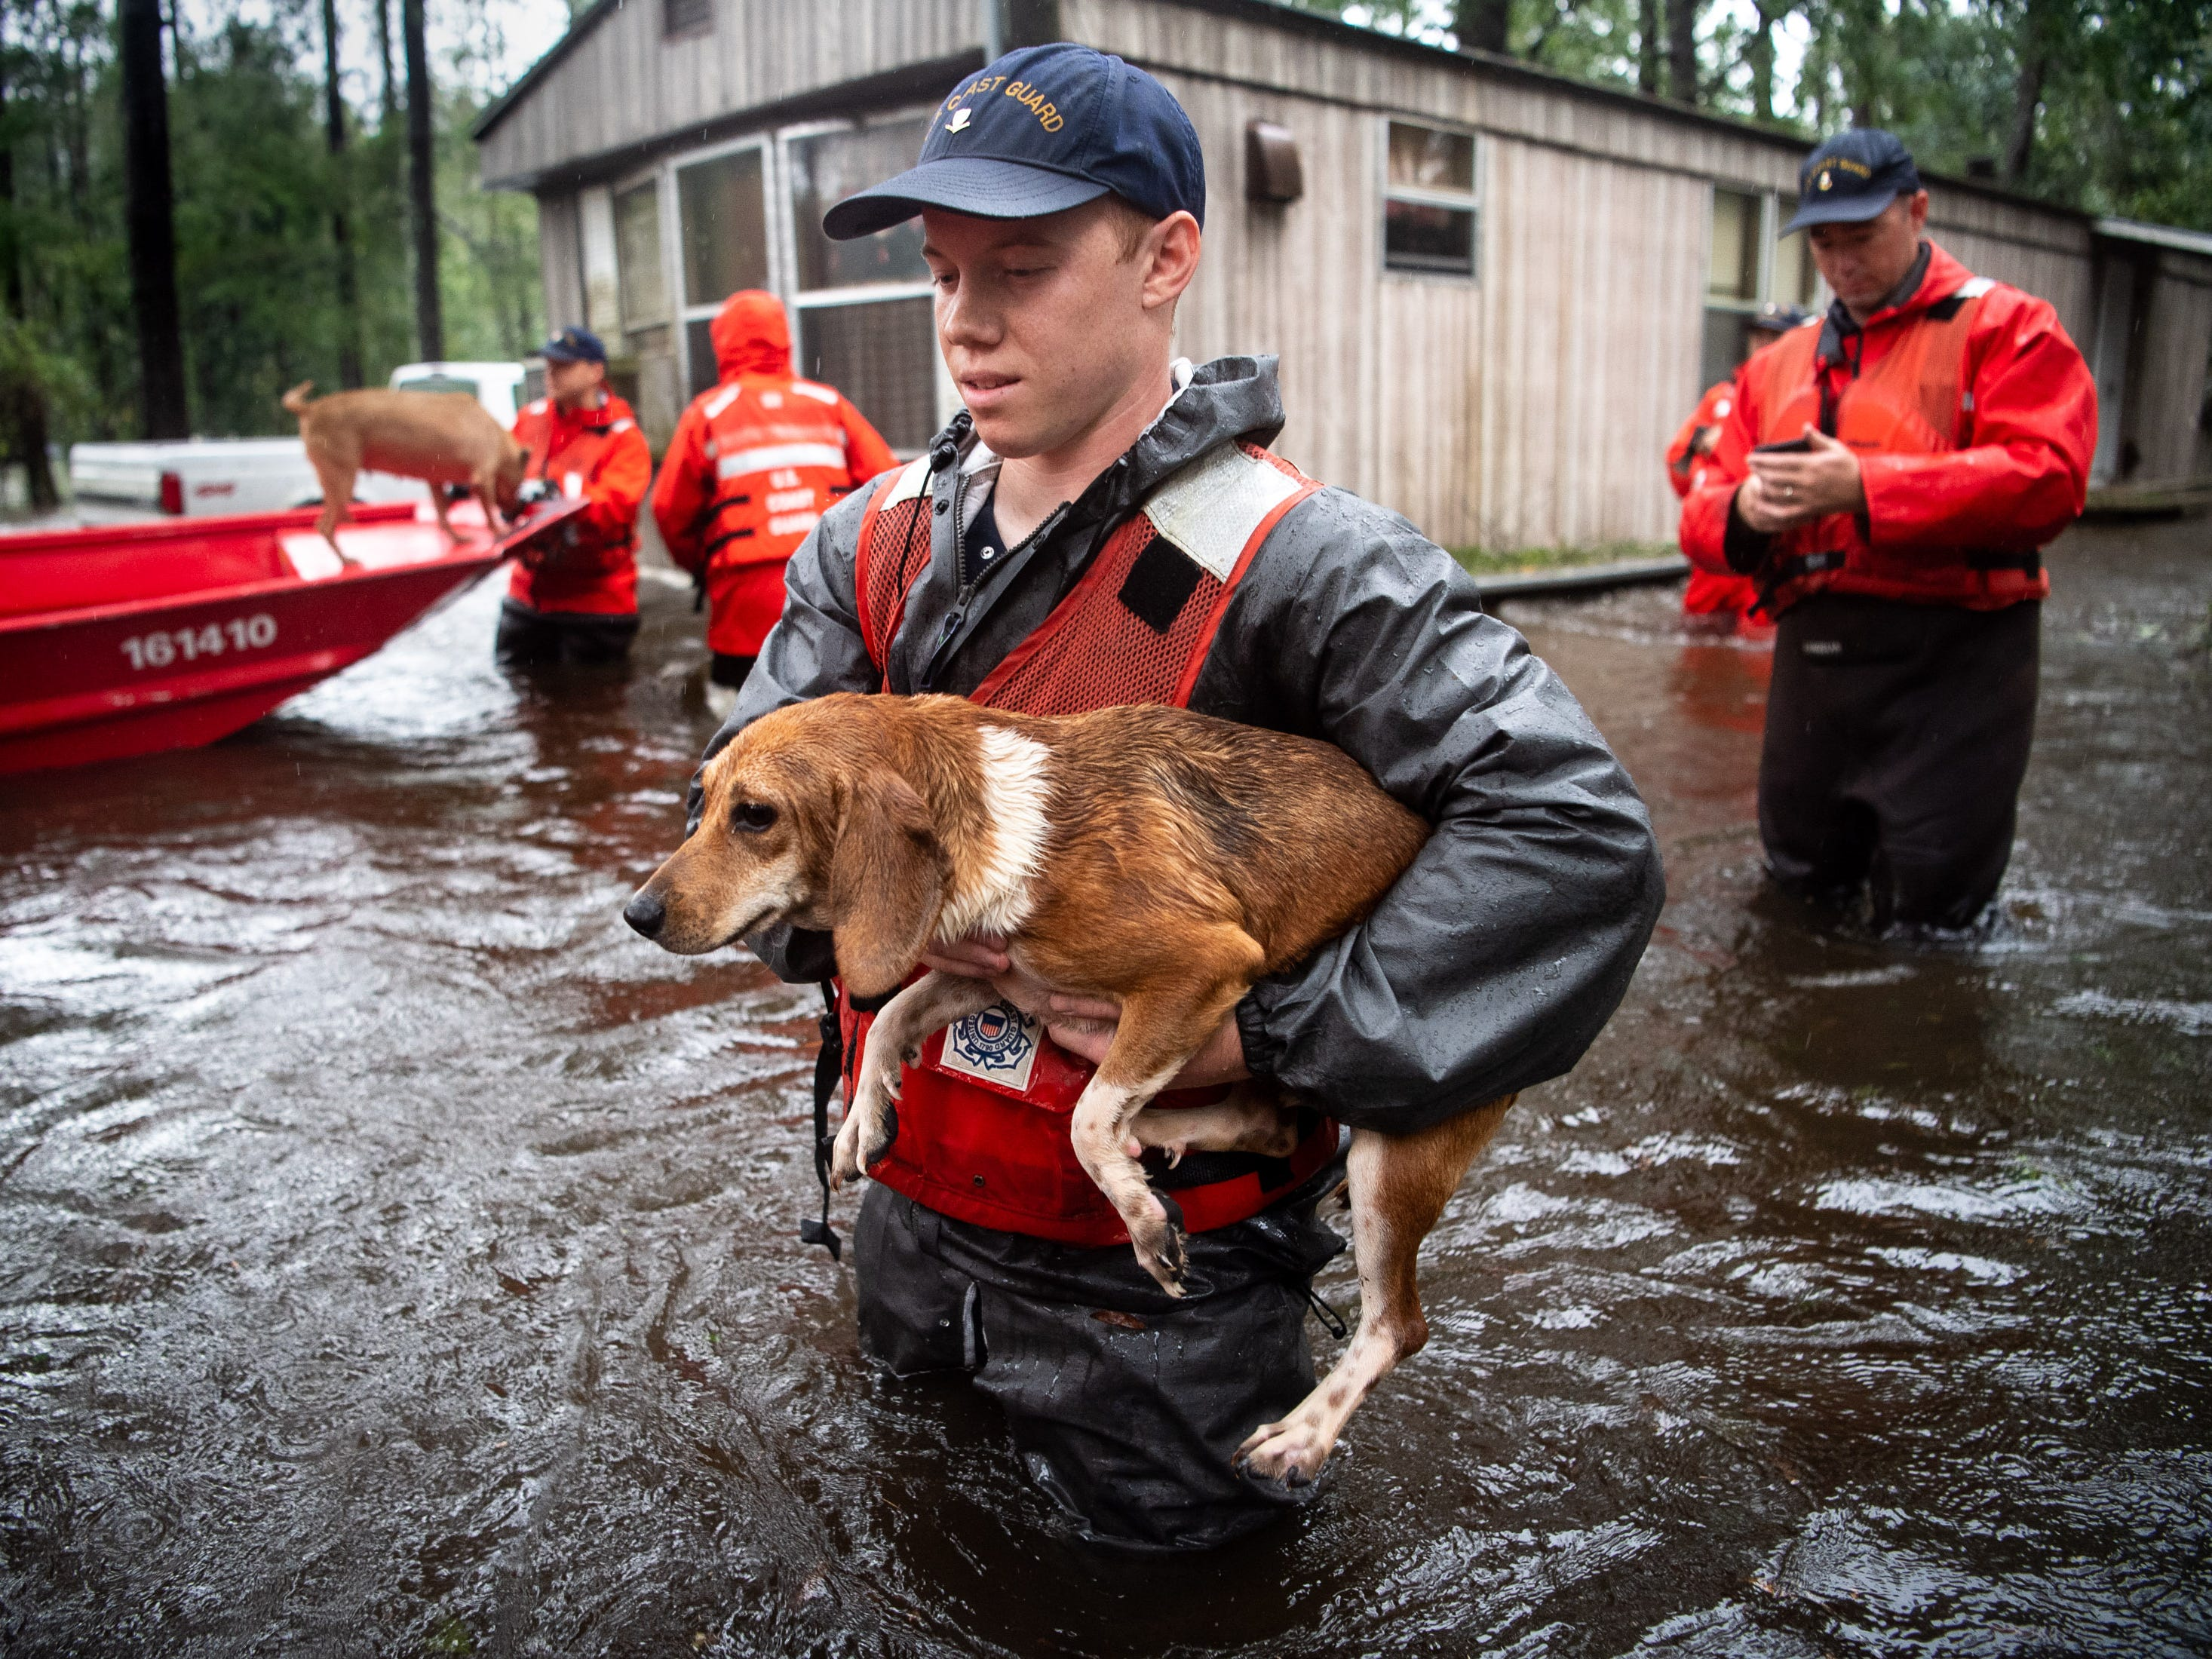 Coast Guard EM3 Kyle Lewis, Kittery, Maine, rescues one of ten beagles from a flooded home in Columbus County, N.C., Sunday, Sept. 16, 2018.